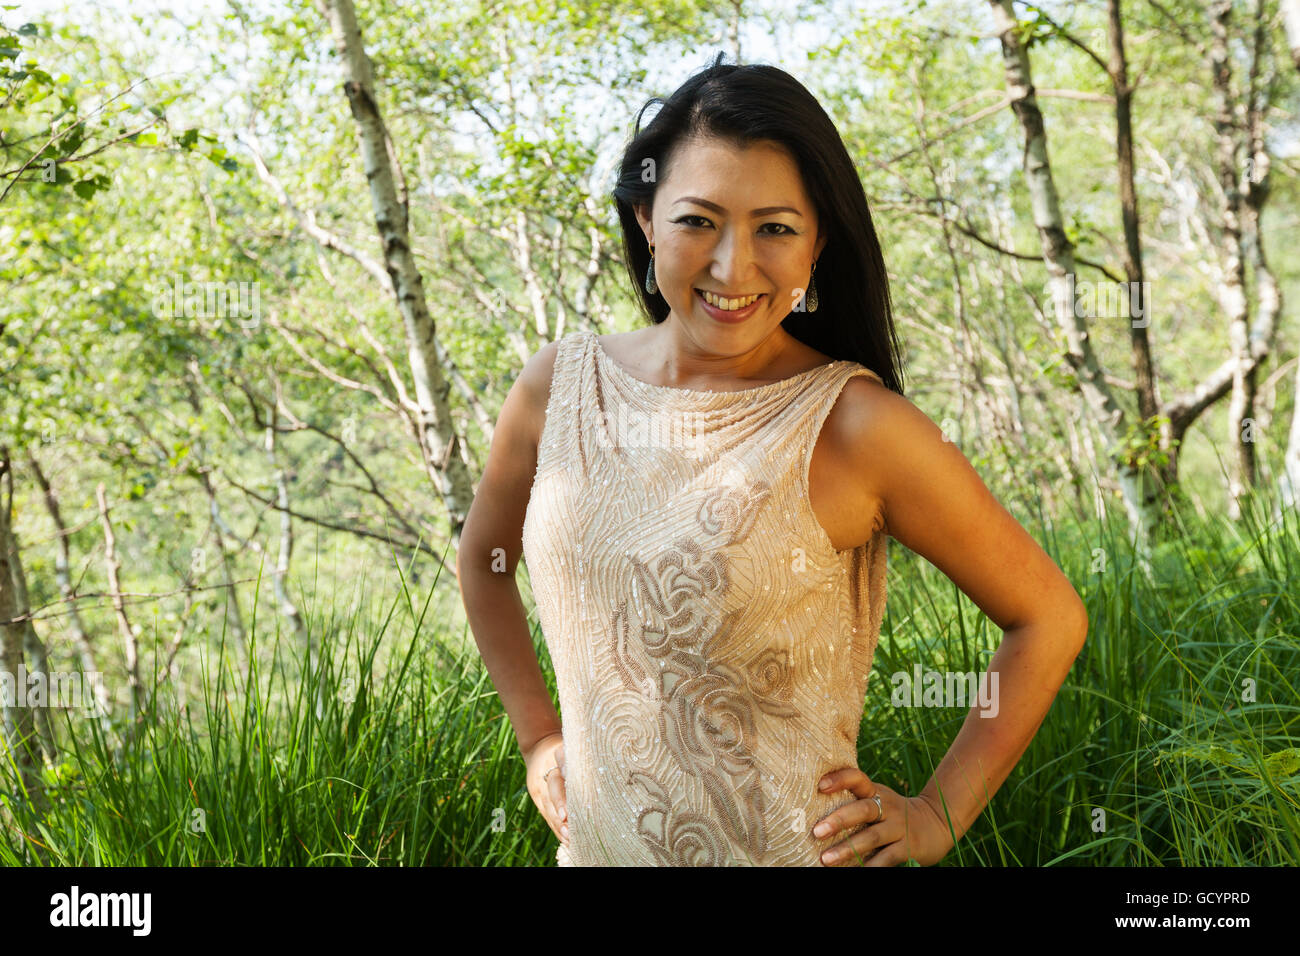 Elegant Asian Elegant Asian Woman In The Forest Stock Photo Royalty Free Image